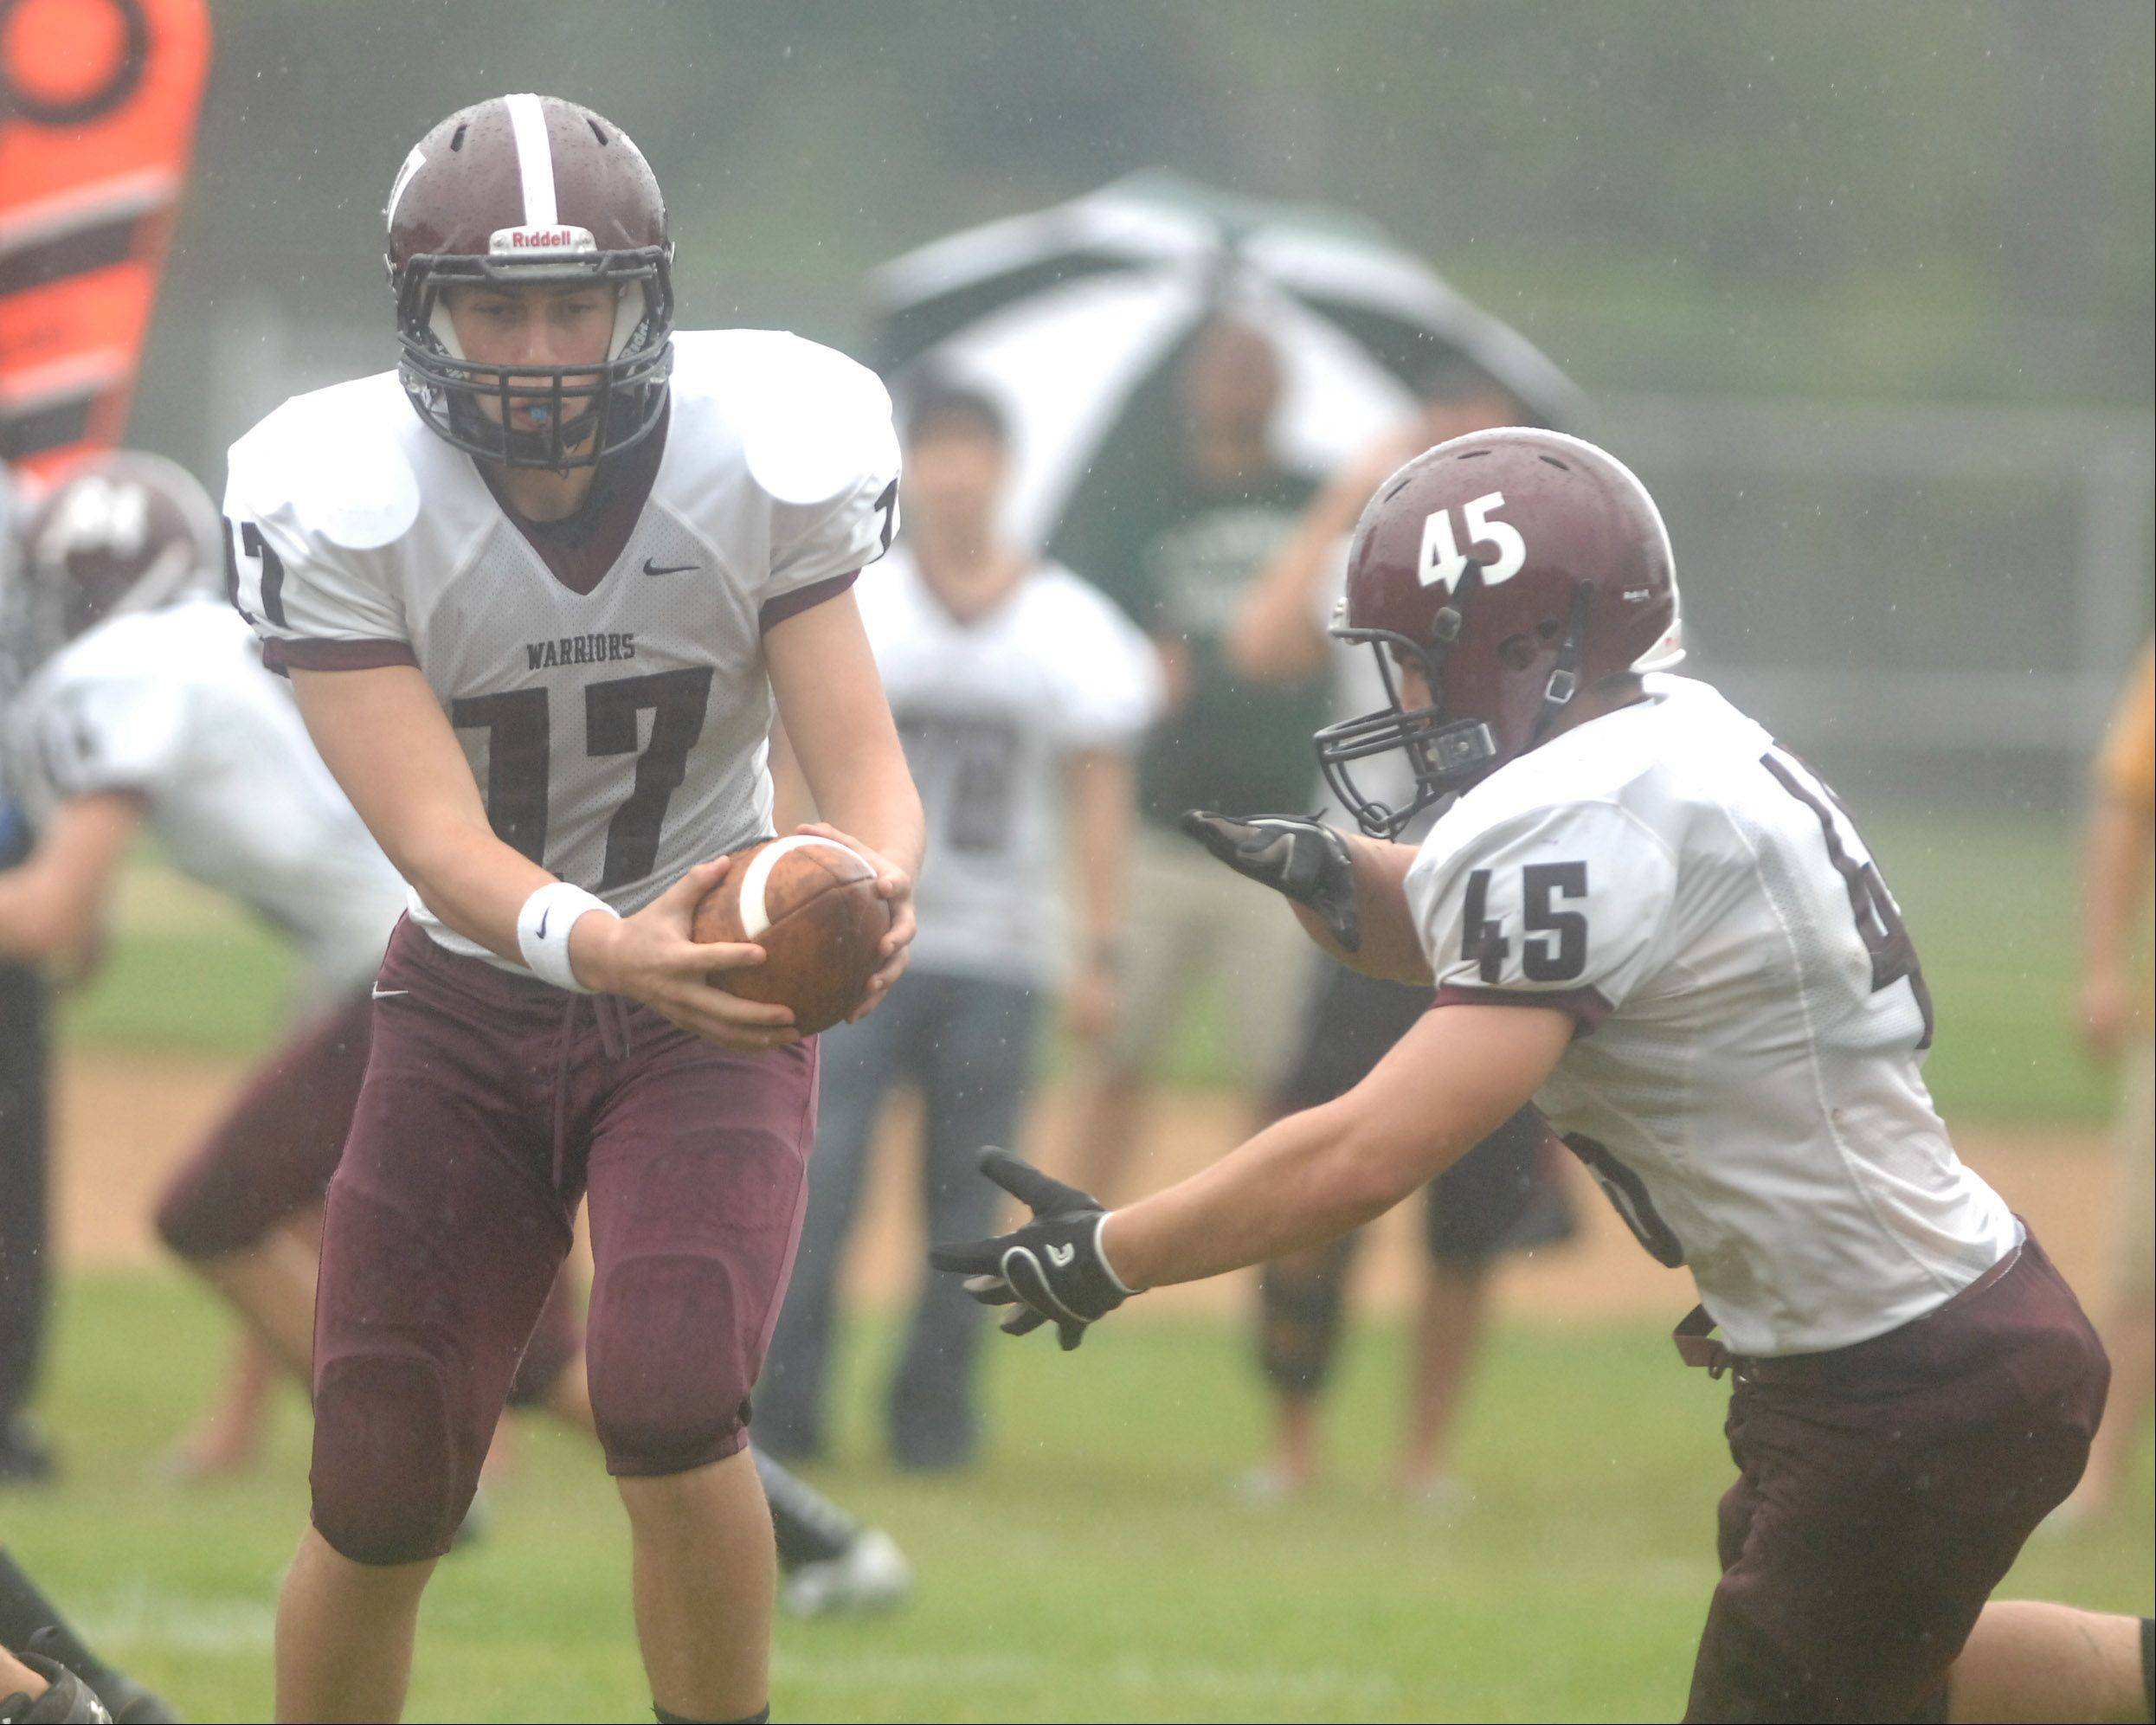 Nate Martinez hands the ball to John Gemmel, of of Wheaton Academy, during the Wheaton Academy vs. Immaculate Conception gme in Elmhurst Saturday.